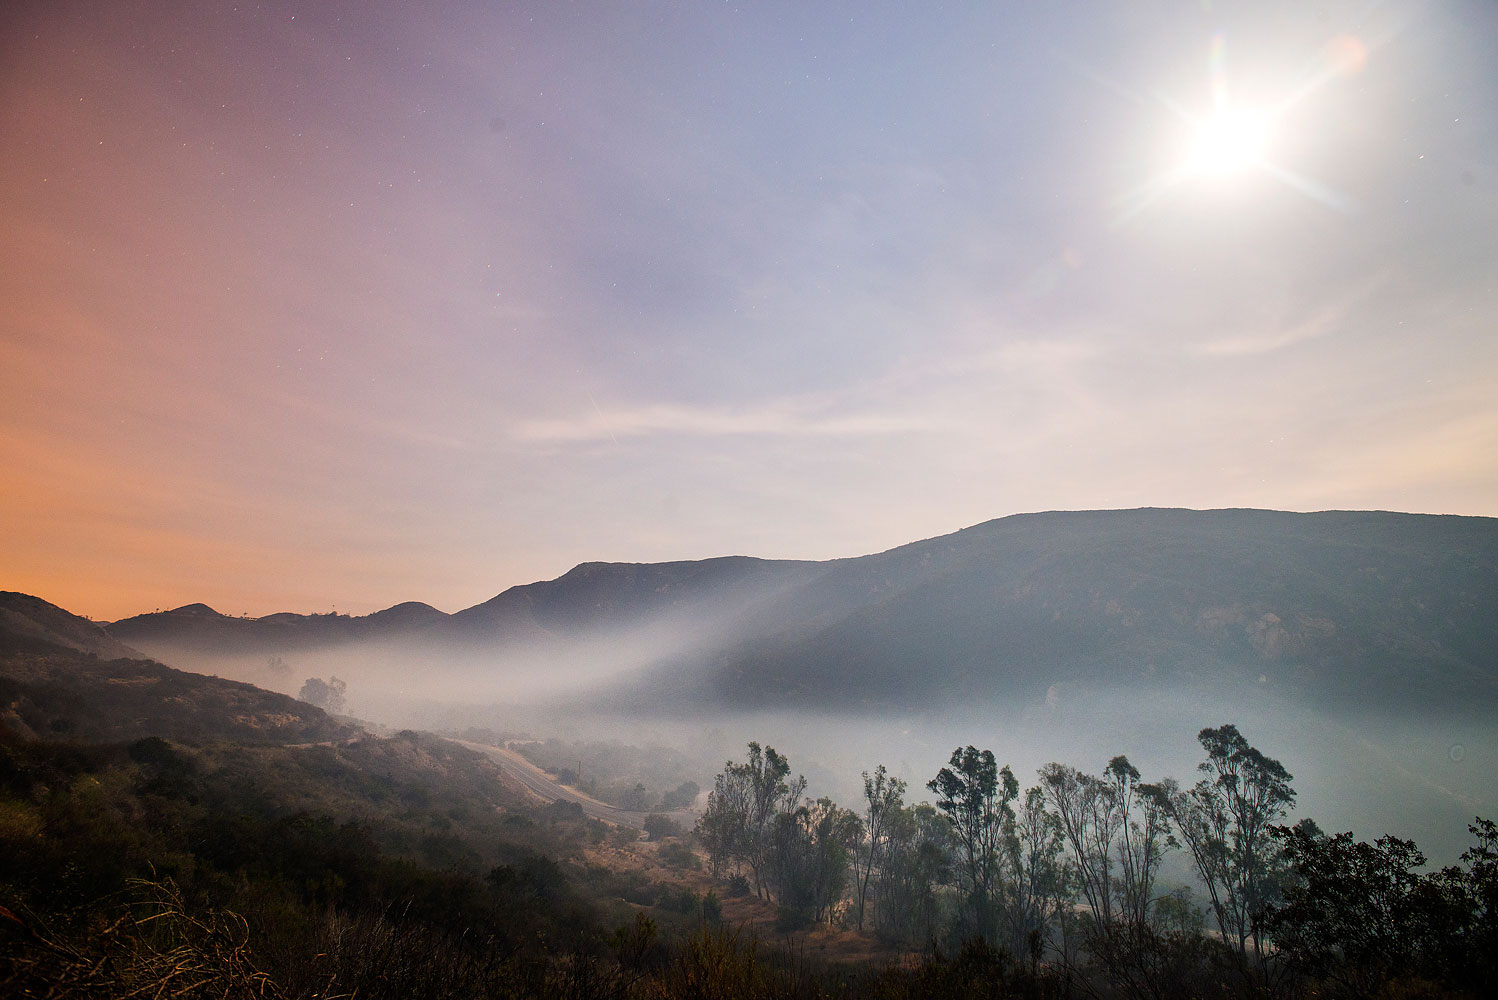 Smoke from the fires in San Marcos and Escondido lays down at dawn due to subsiding winds near Elfin Forest Road, San Diego county, Calif., May 16, 2014.